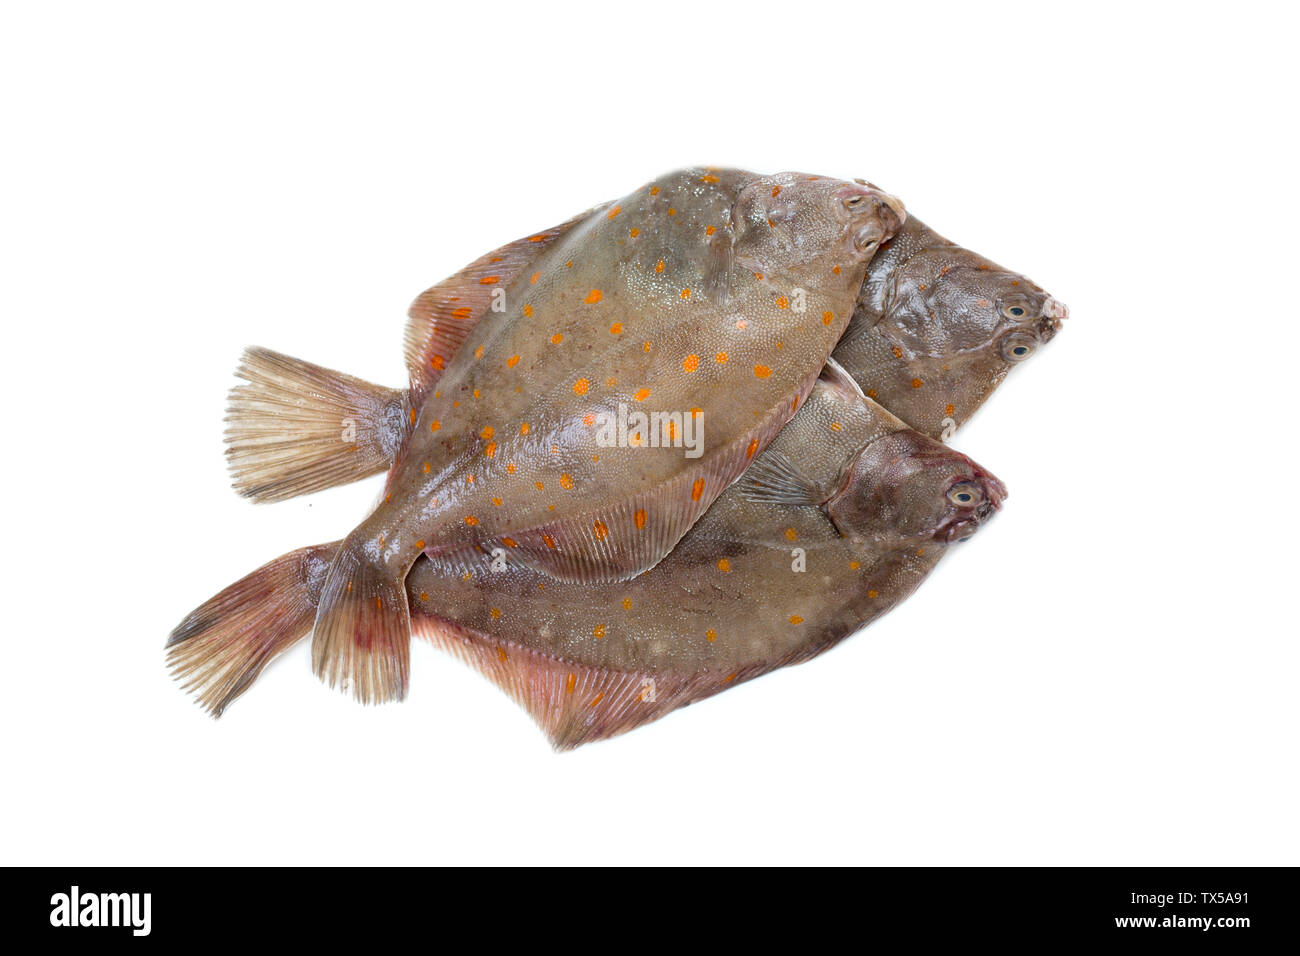 Whole Plaice flatfish - Stock Image